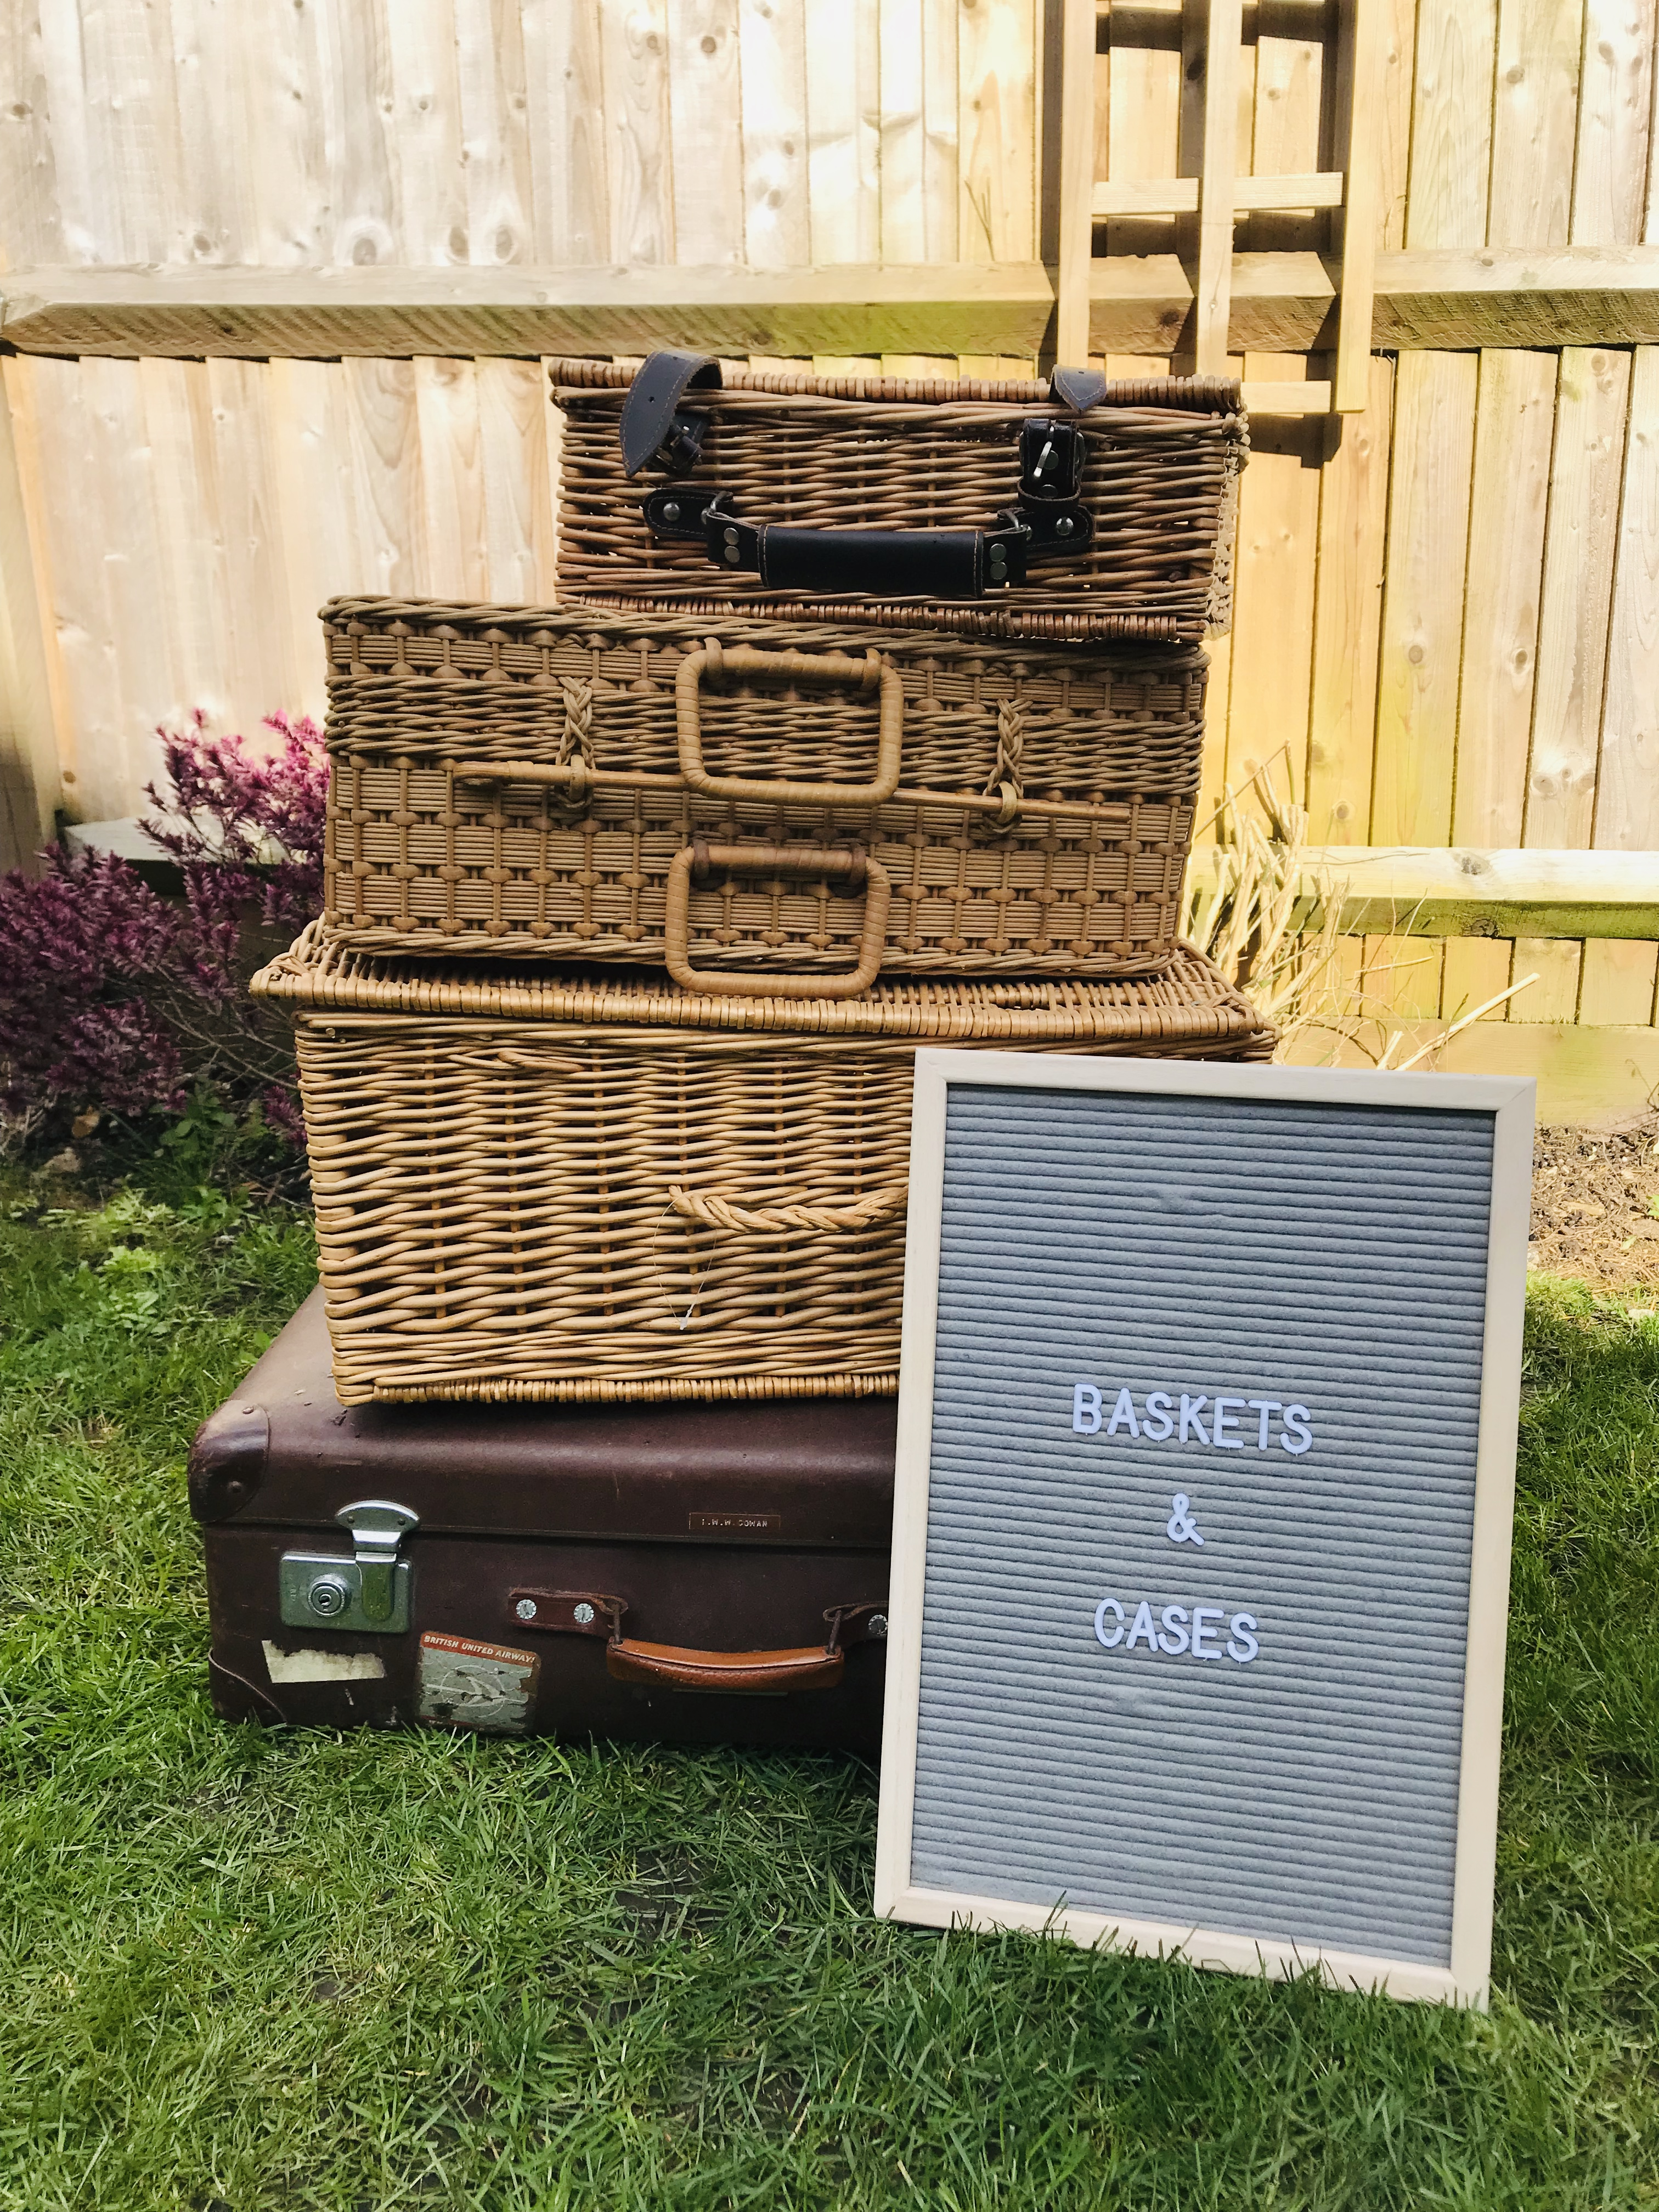 Baskets and Cases